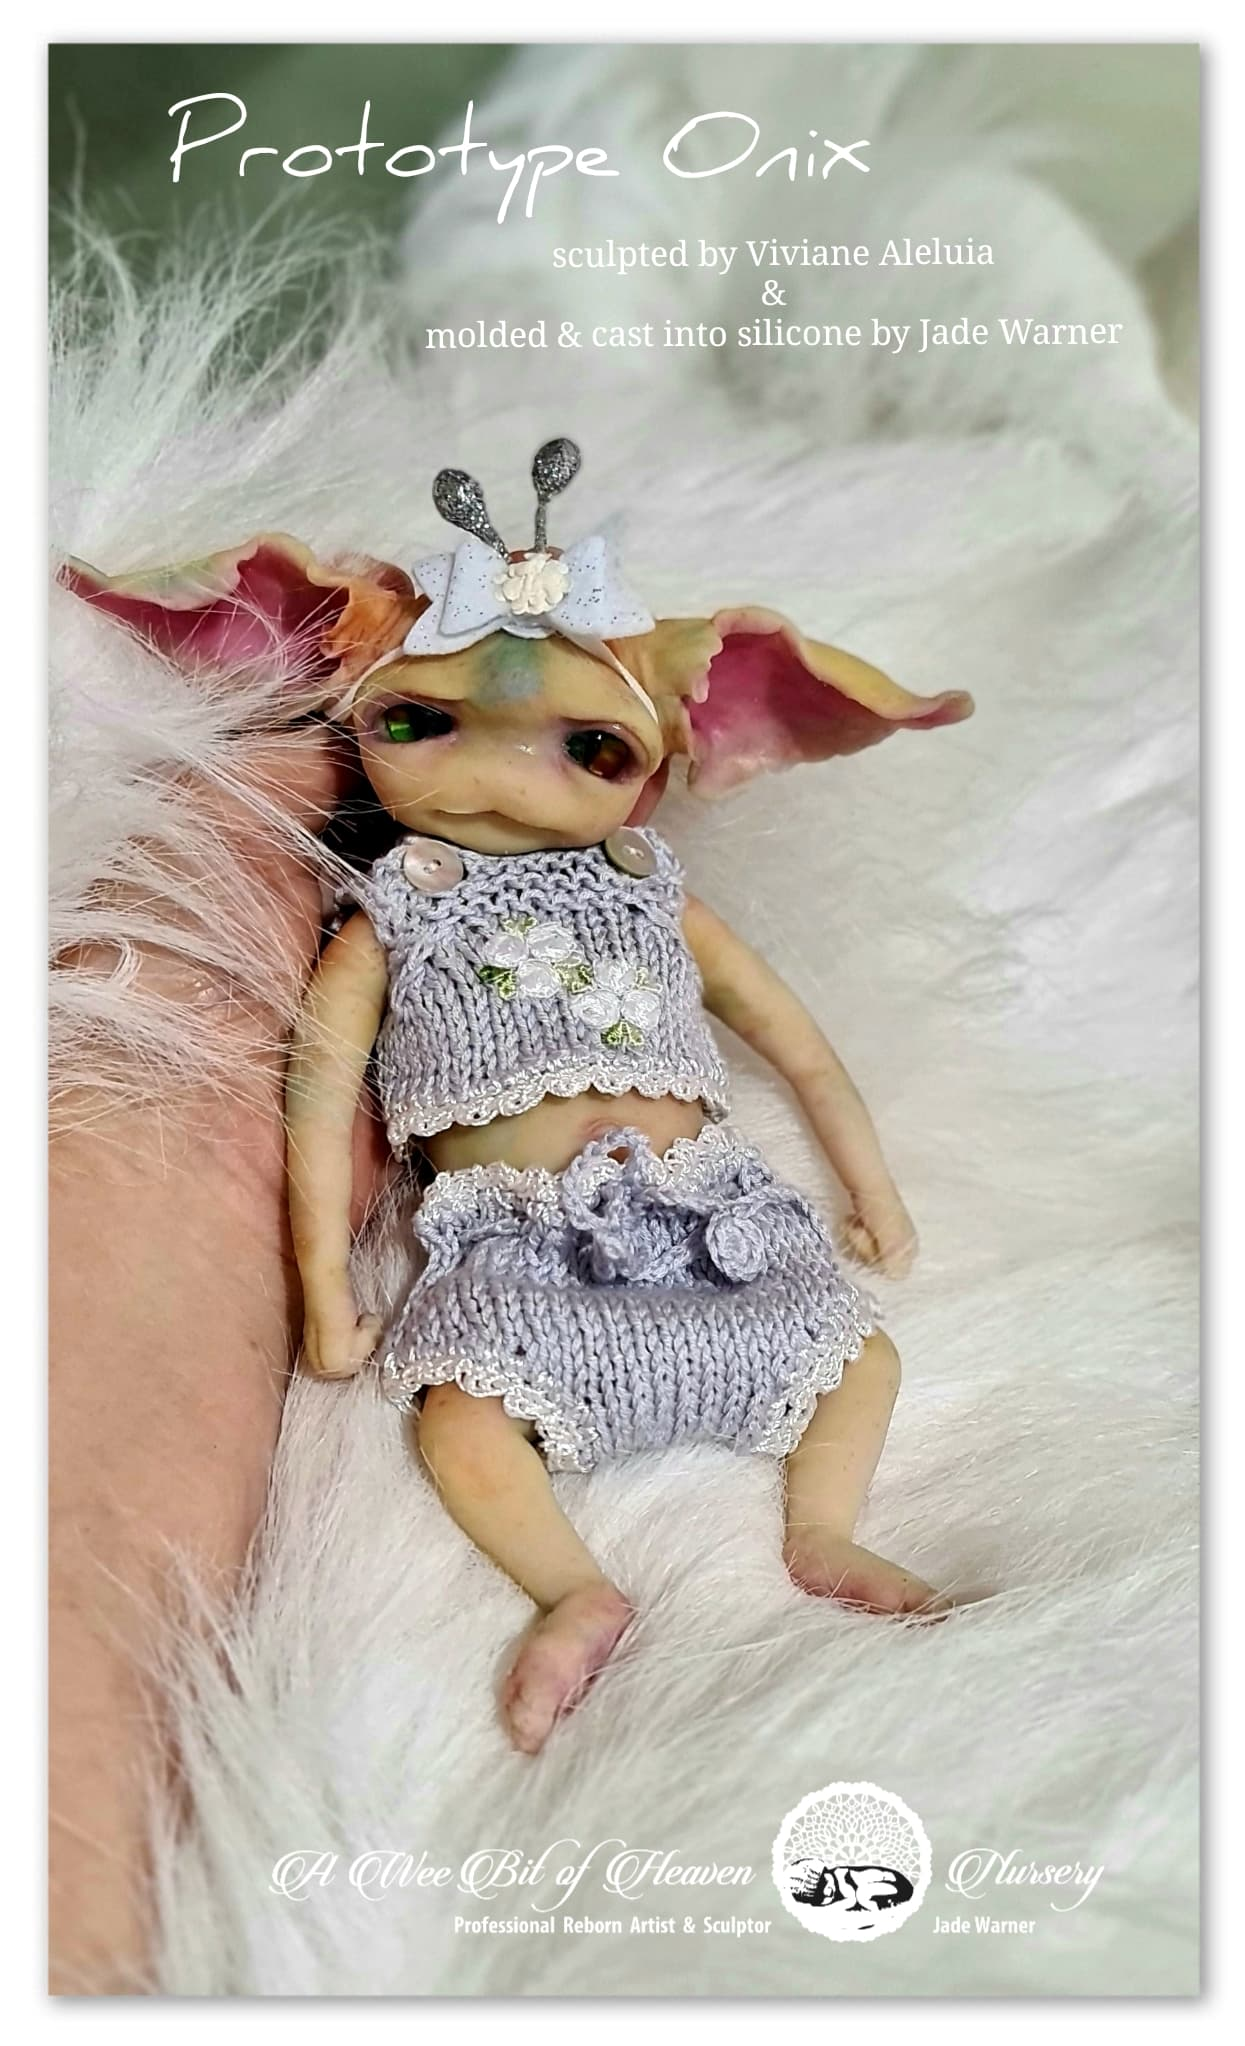 Onix Forest Mythical Creature Full Body Silicone baby by Viviane Aleluia